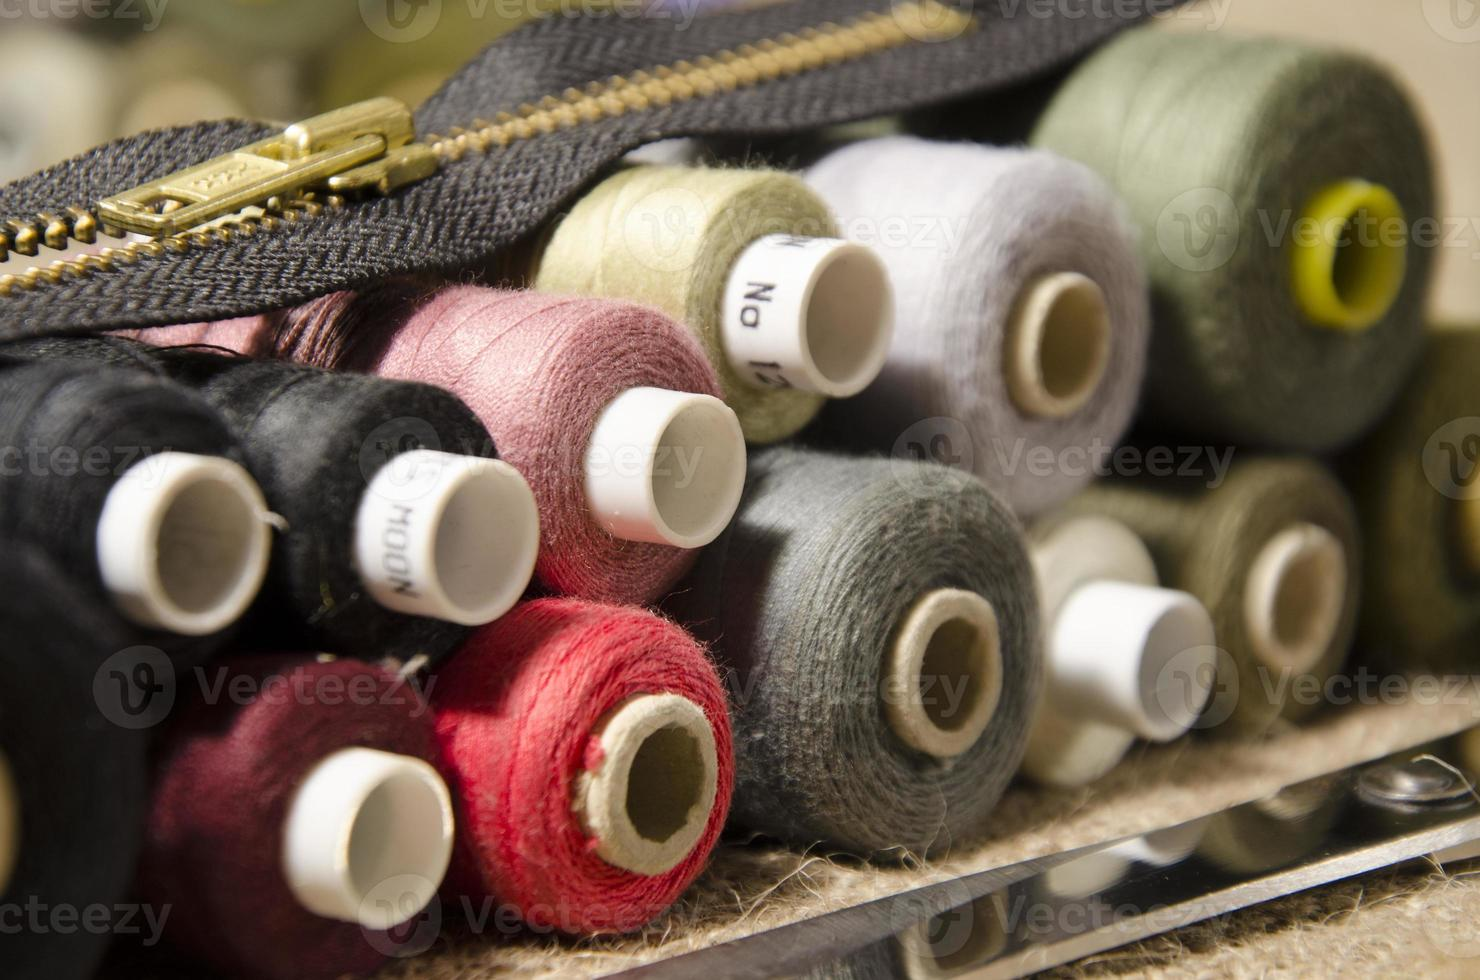 needle and thread a sewing kit photo